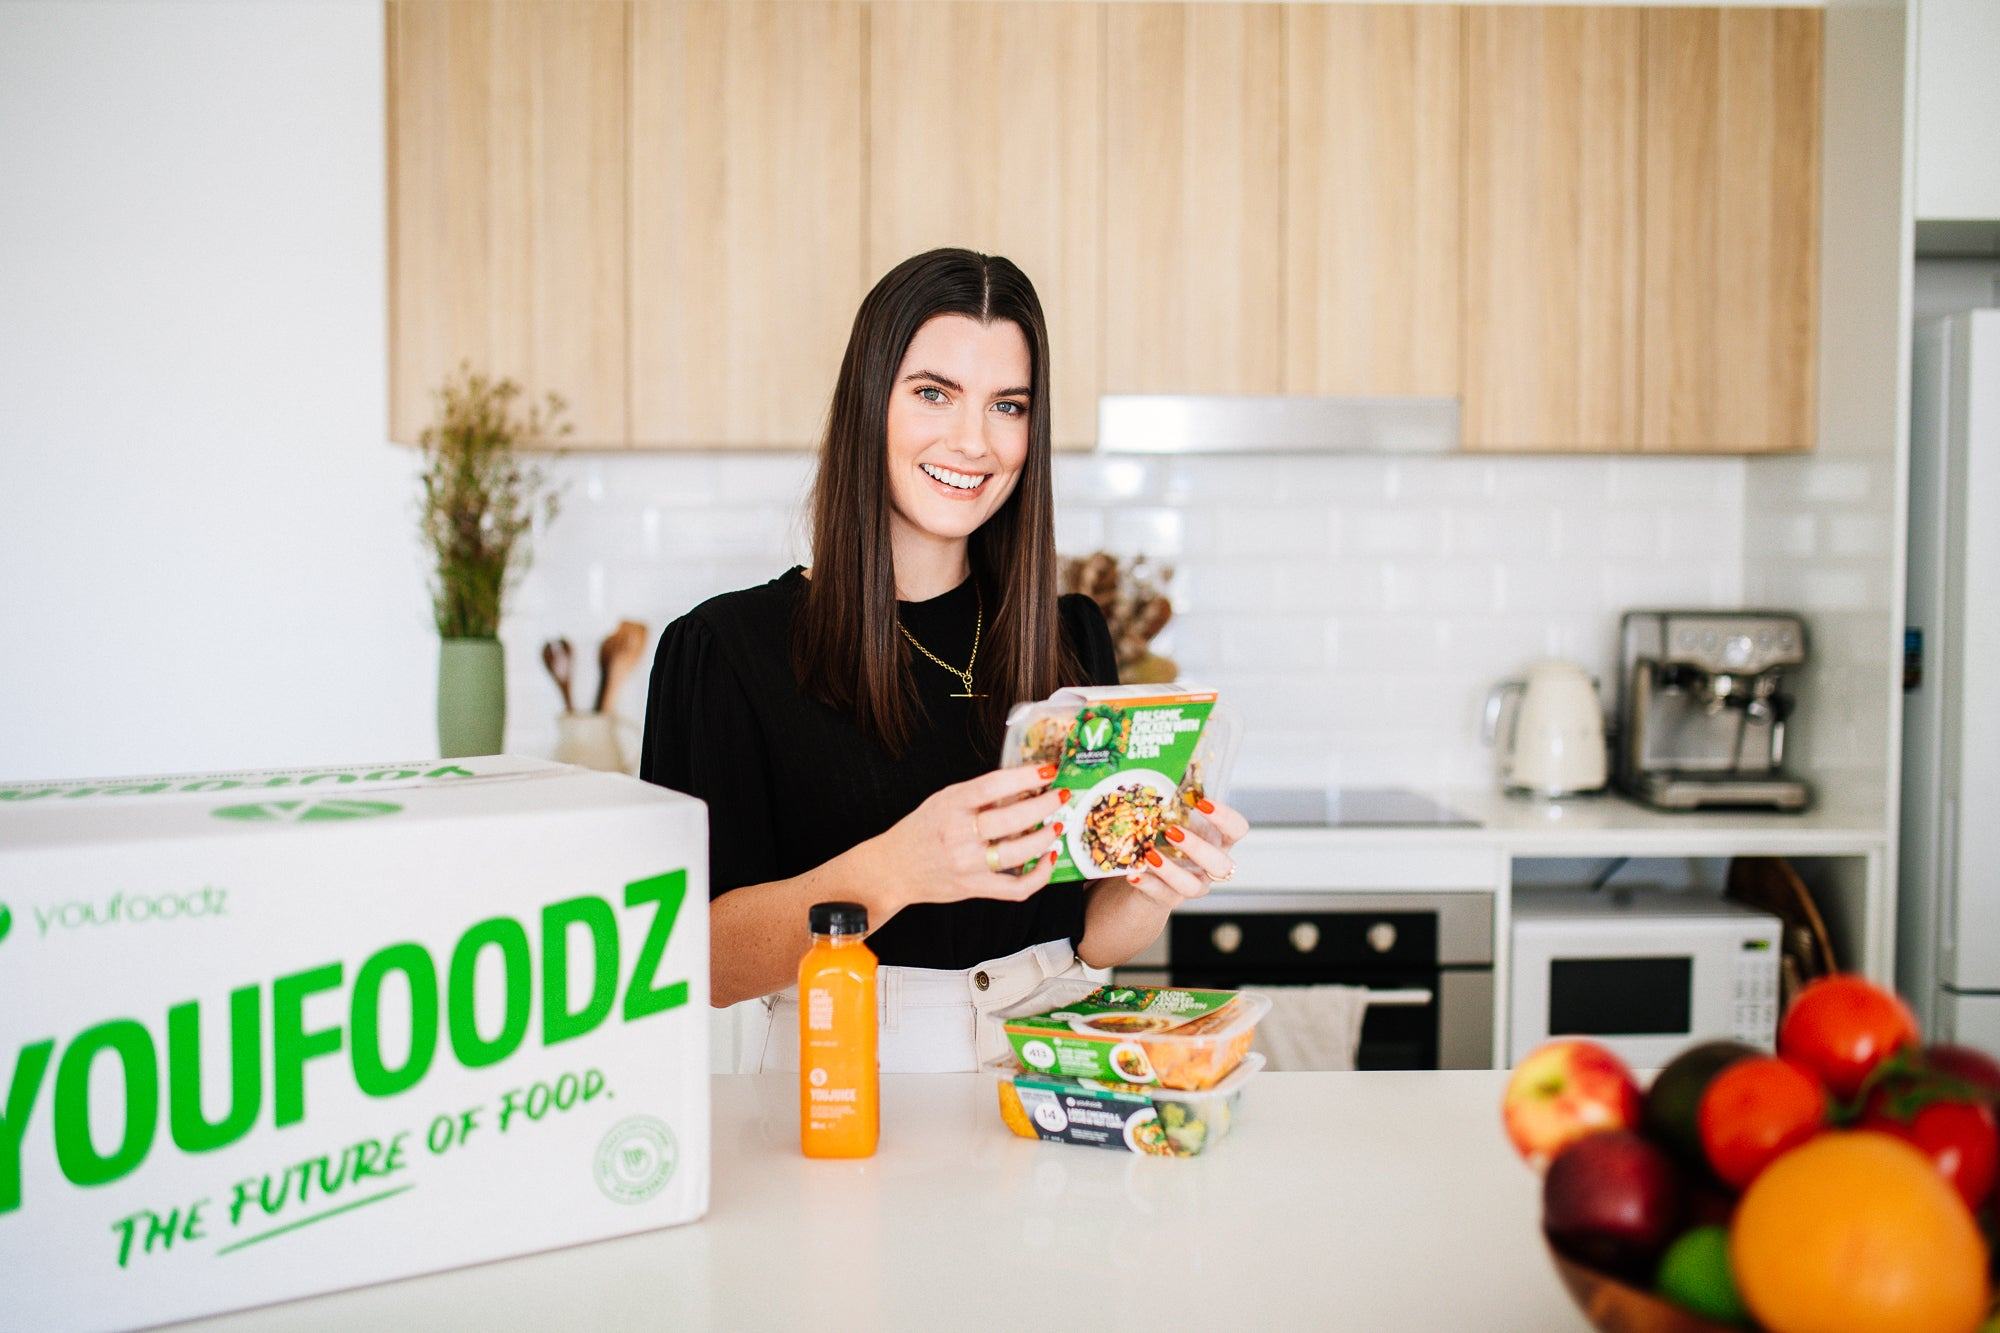 Tess standing in her kitchen holding a Youfoodz meal. On the bench is also a Youfoodz box